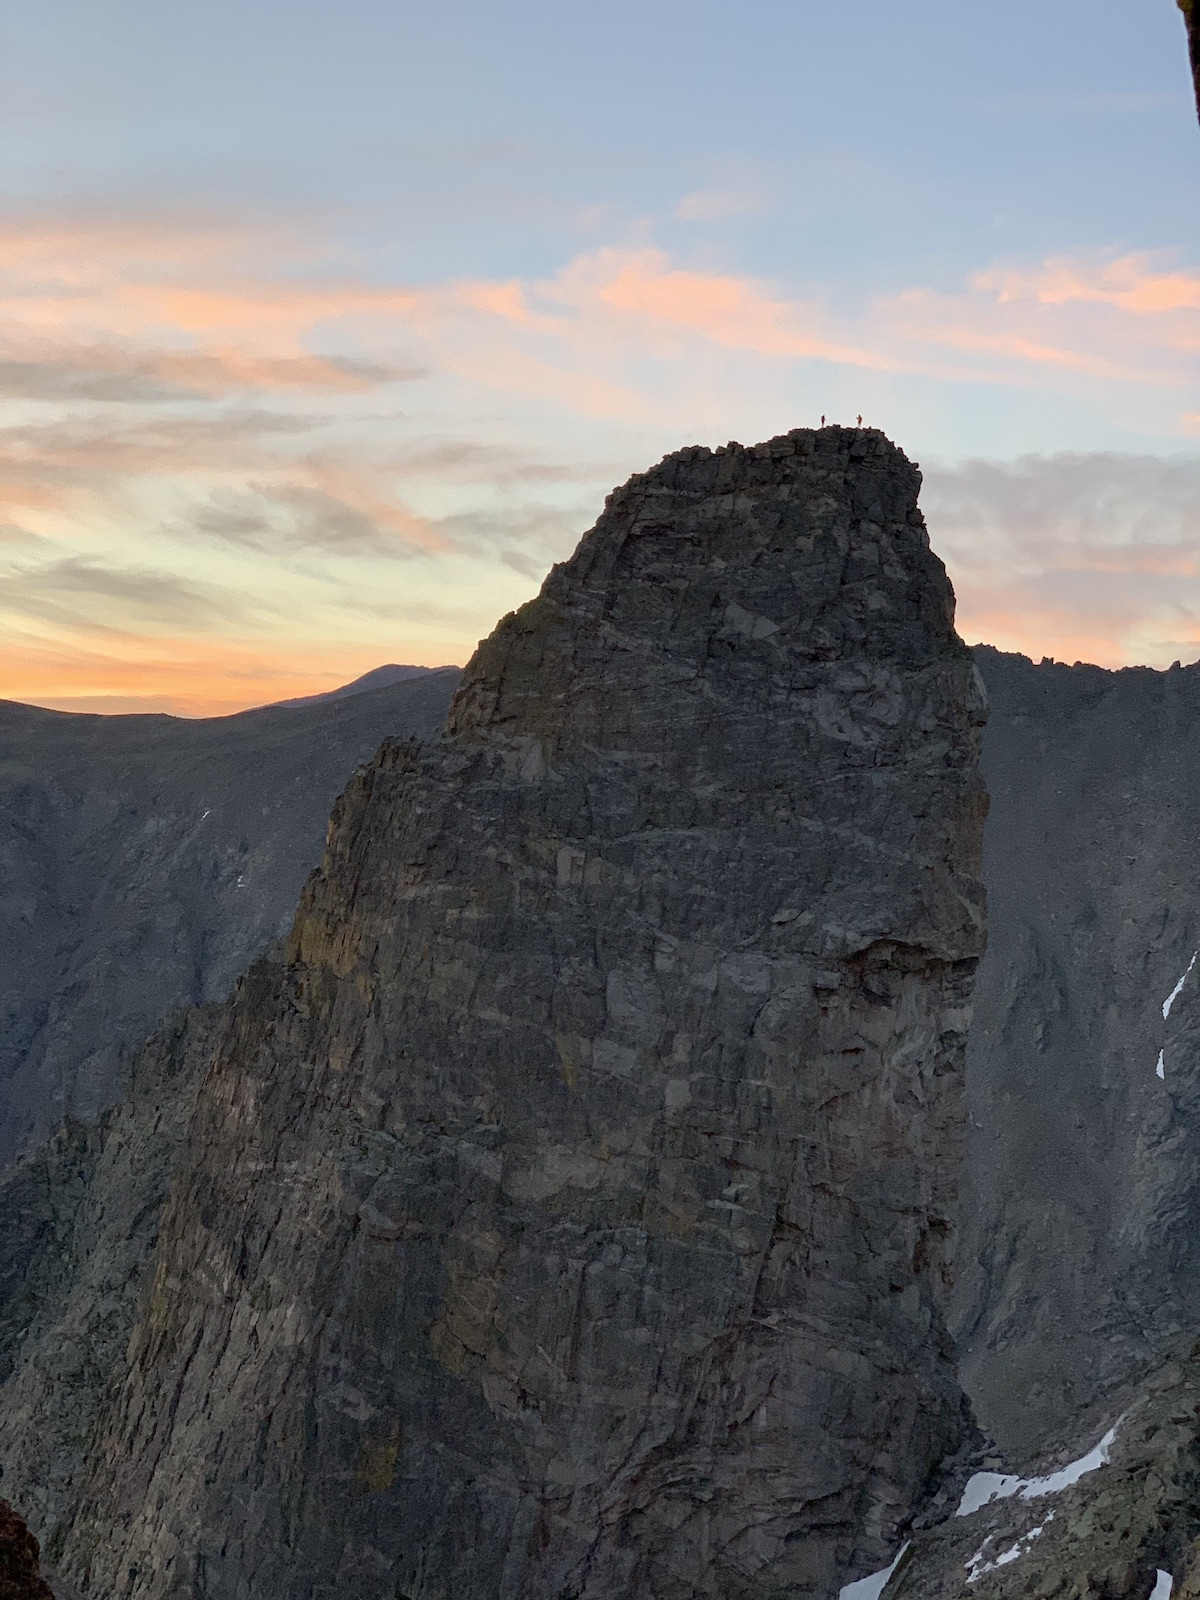 Alex Honnold and Tommy Caldwell can be seen standing on the summit of the Sharkstooth (12,630') in Rocky Mountain National Park at sunrise on Saturday, July 18, during their Continental Divide Ultimate Linkup (CDUL). [Photo] Adam Stack